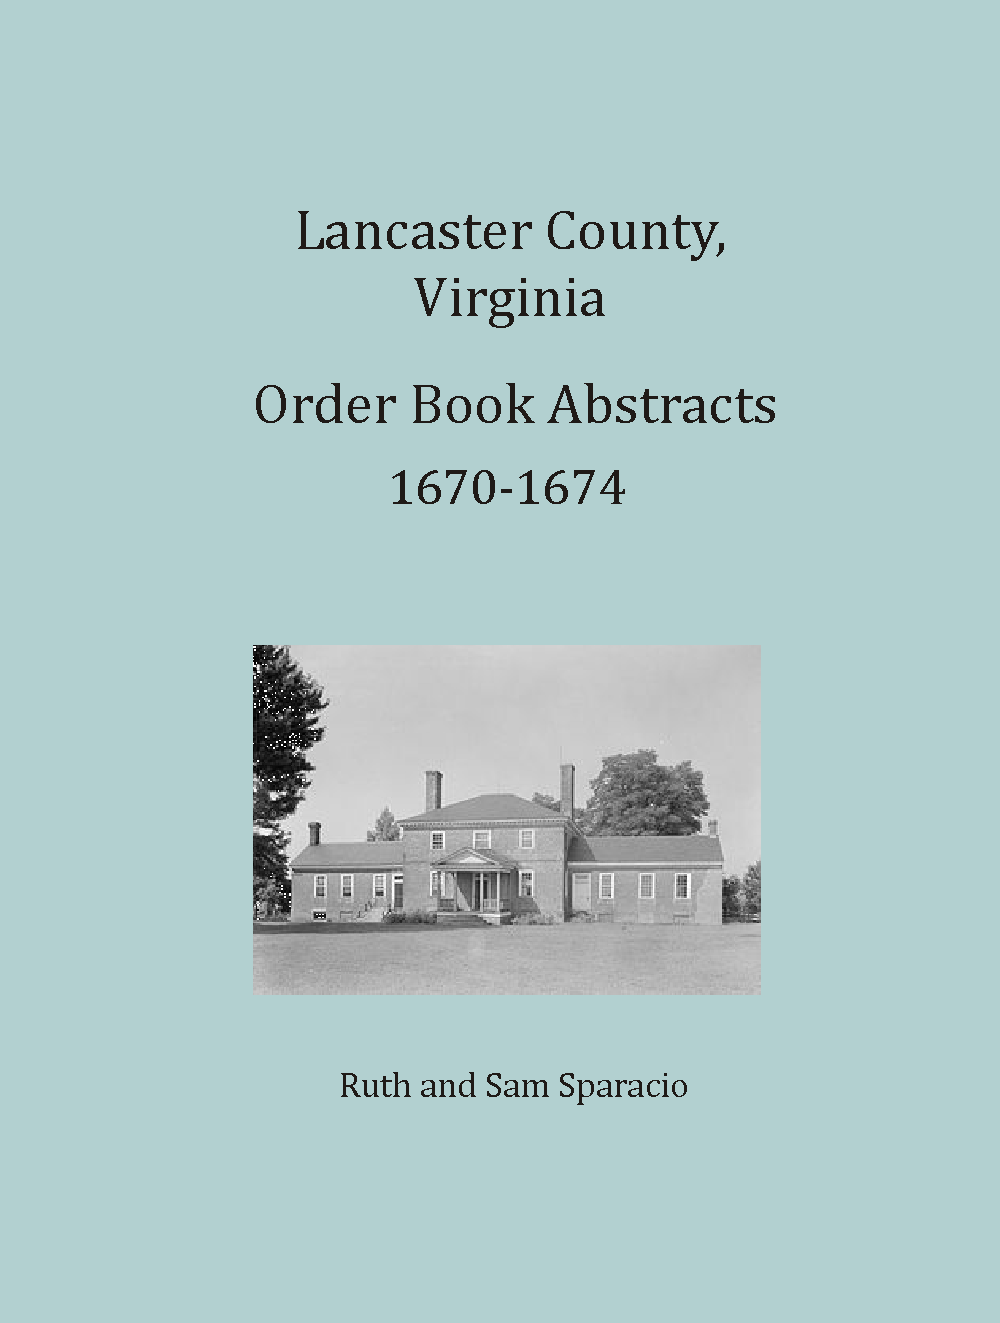 Lancaster County, Virginia Order Book Abstracts, 1670-1674